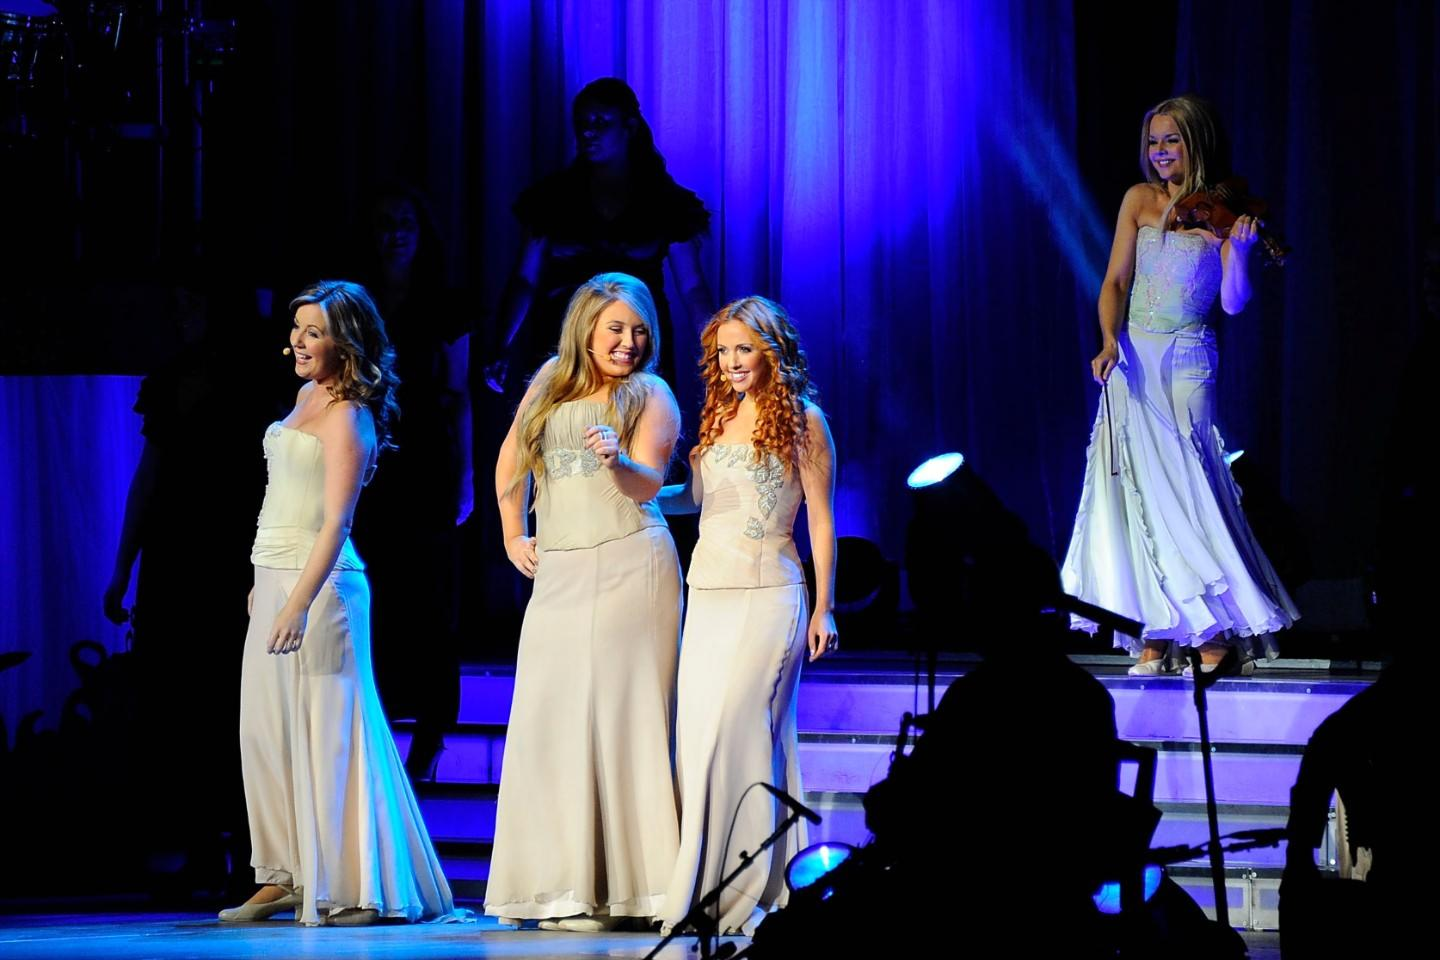 Celtic Woman Tour 2020 Usa Vstupenky na Celtic Woman | Celtic Woman data turné 2020 a